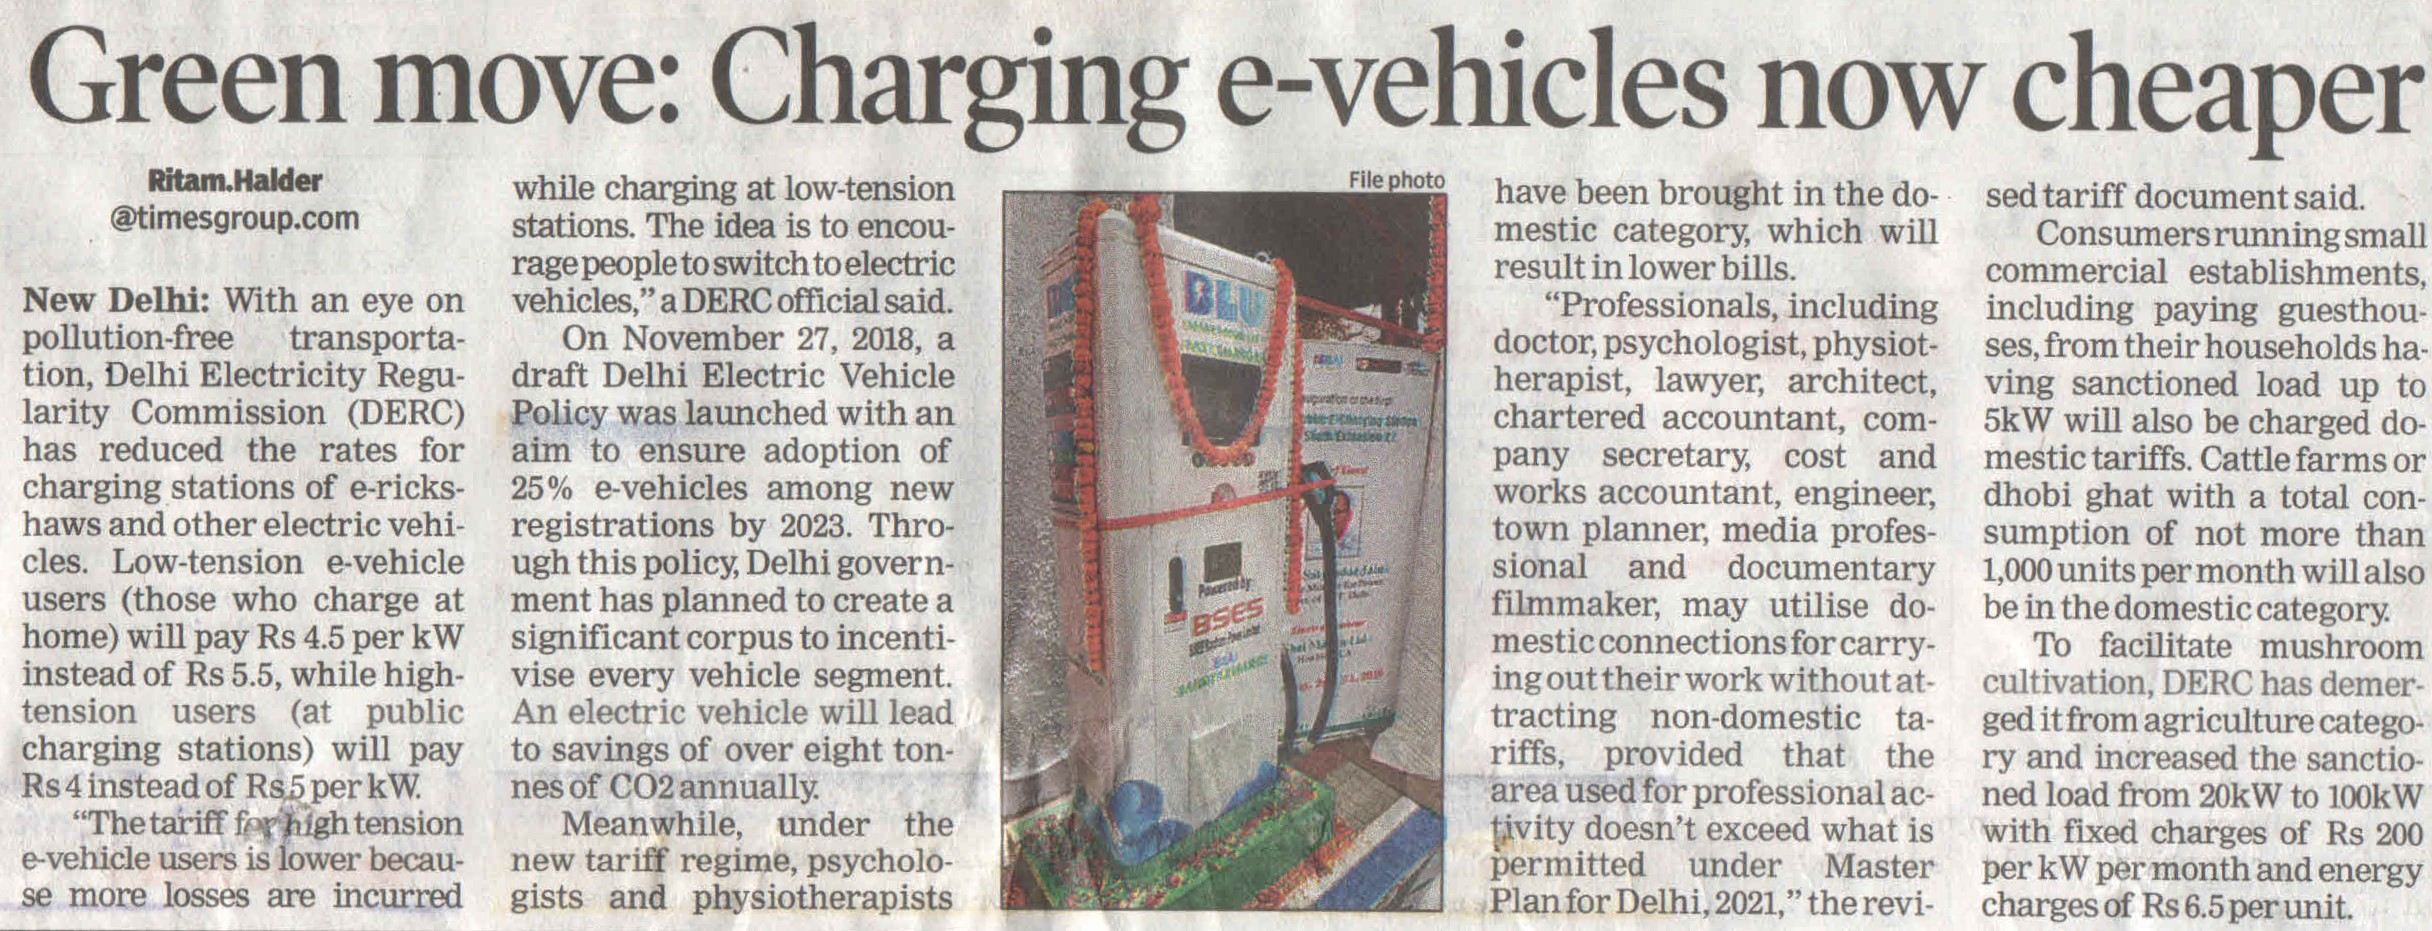 Charging E Vehicles gets cheaper